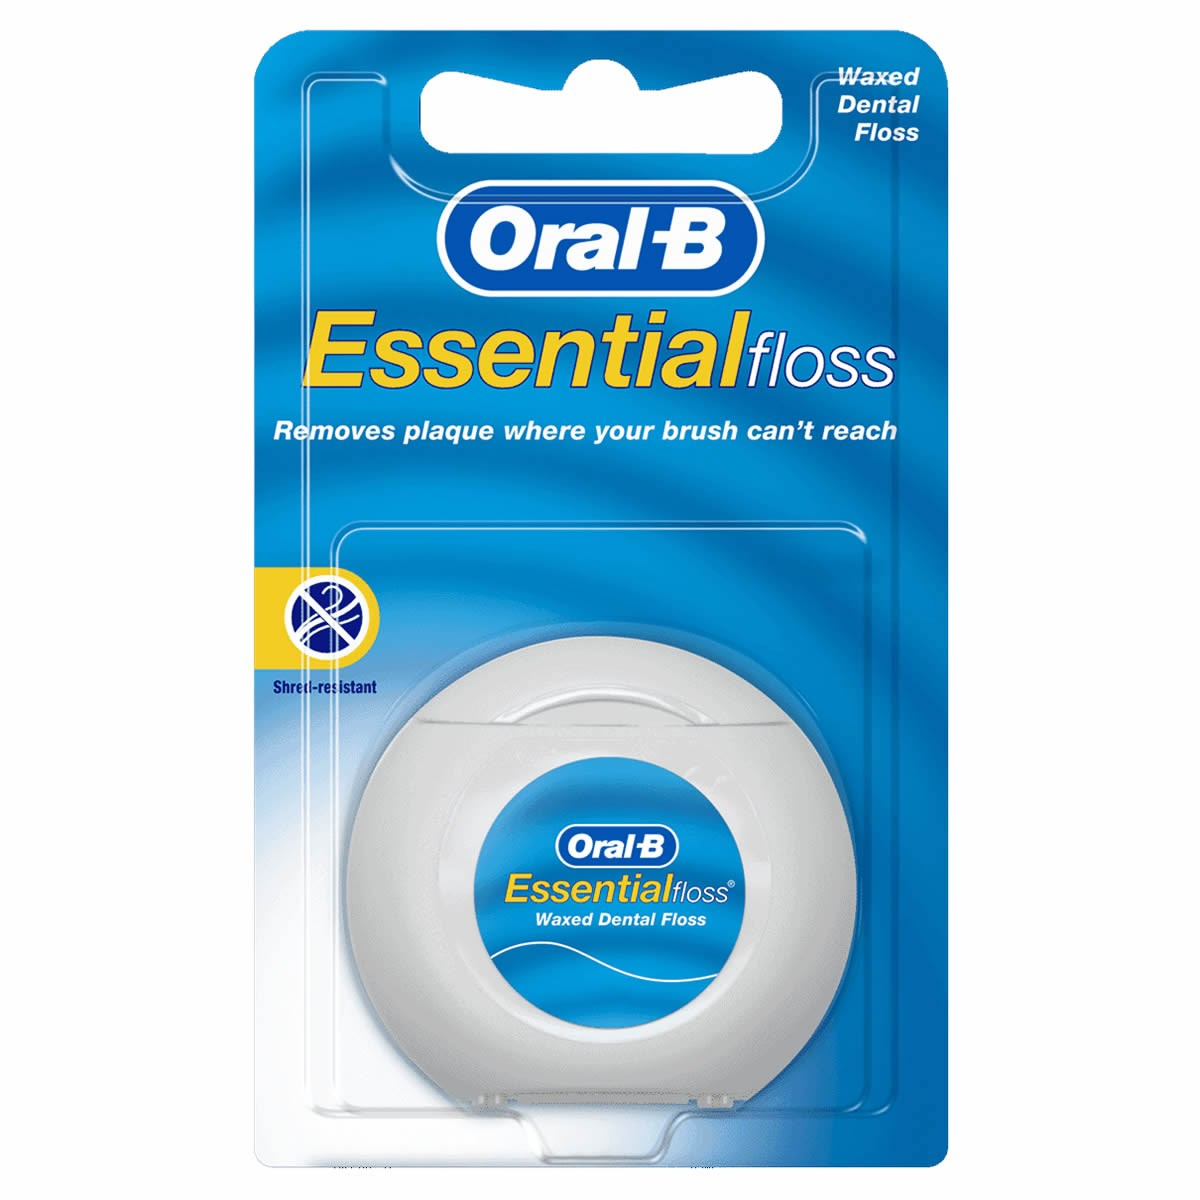 Oral-B Essential Waxed Dental Floss